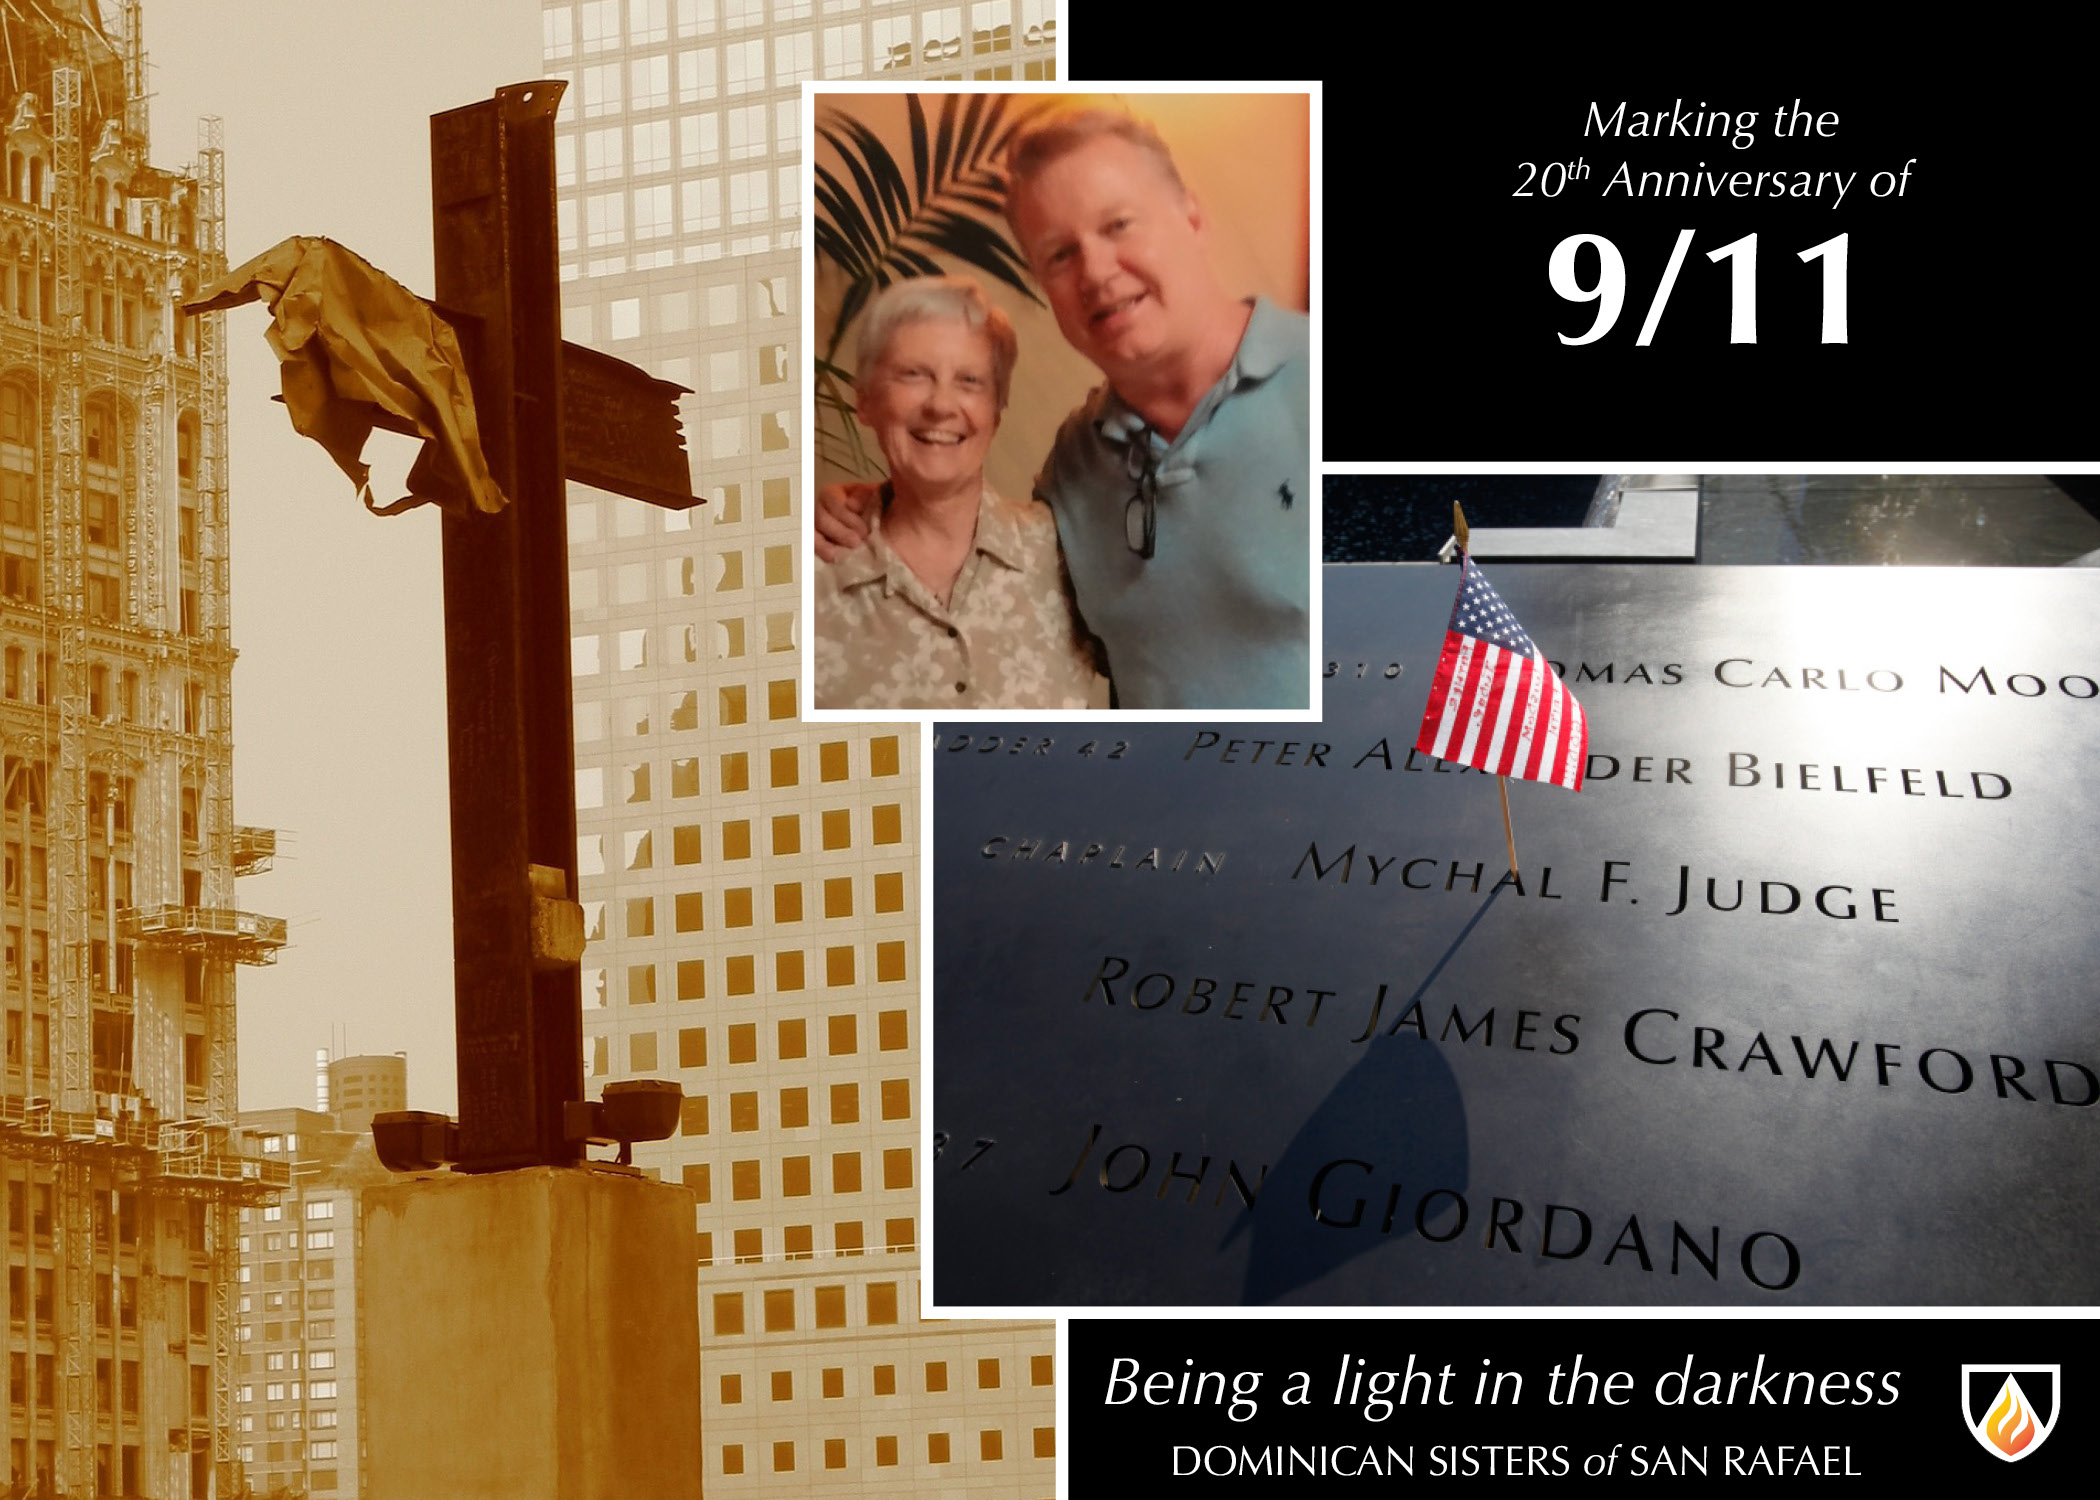 A Light in the Darkness—A Reflection for the 20thAnniversary of 9/11